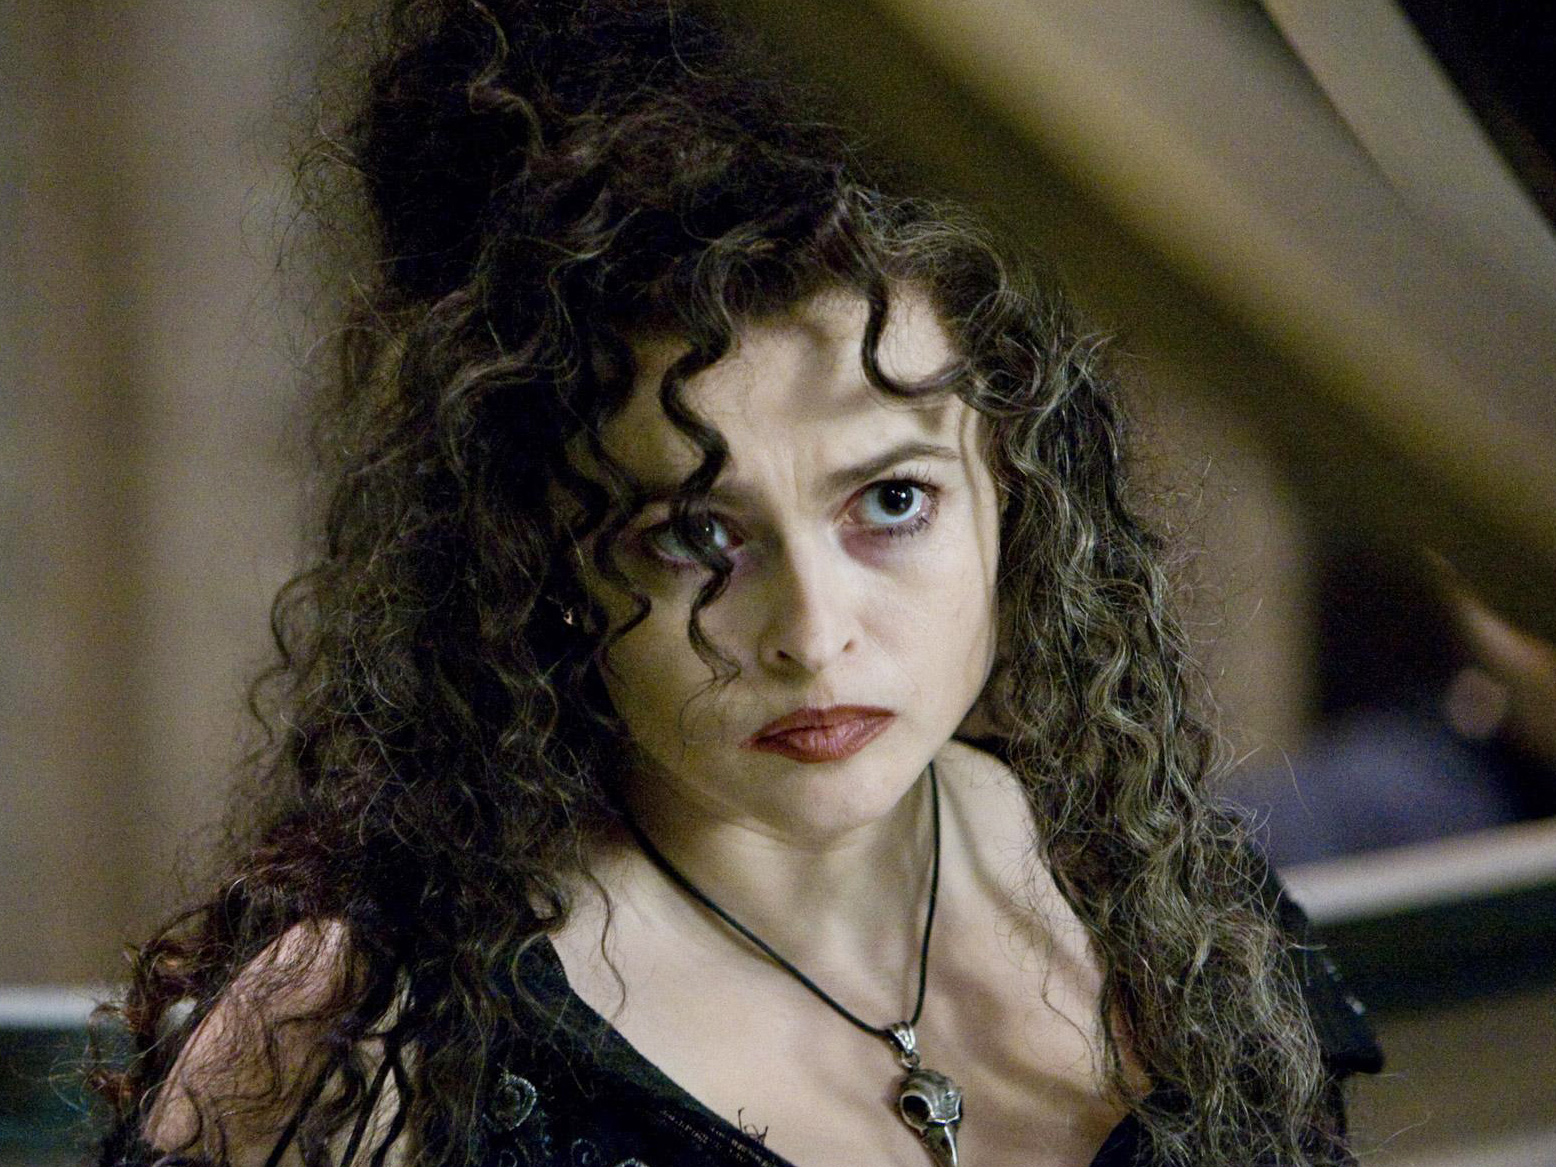 Bellatrix form Harry Potter